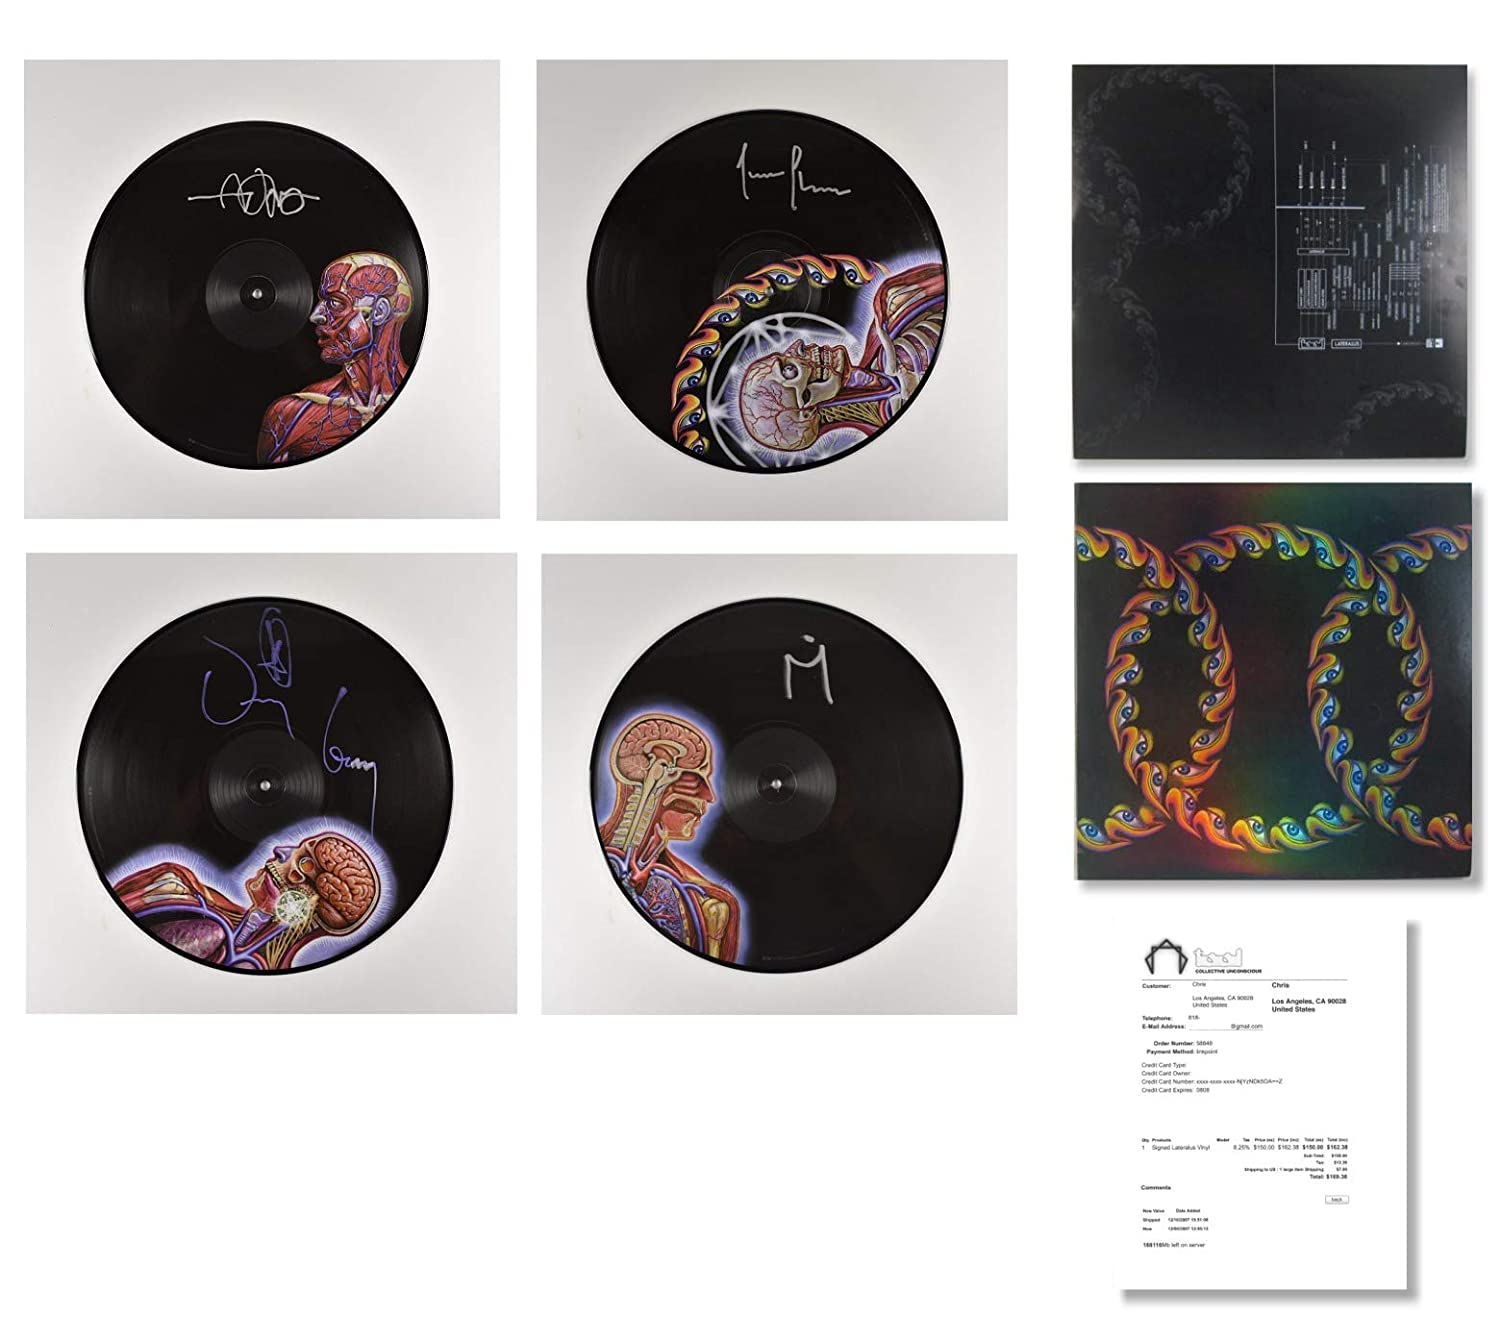 TOOL Lateralus Autographed Signed Picture Disc Record Album